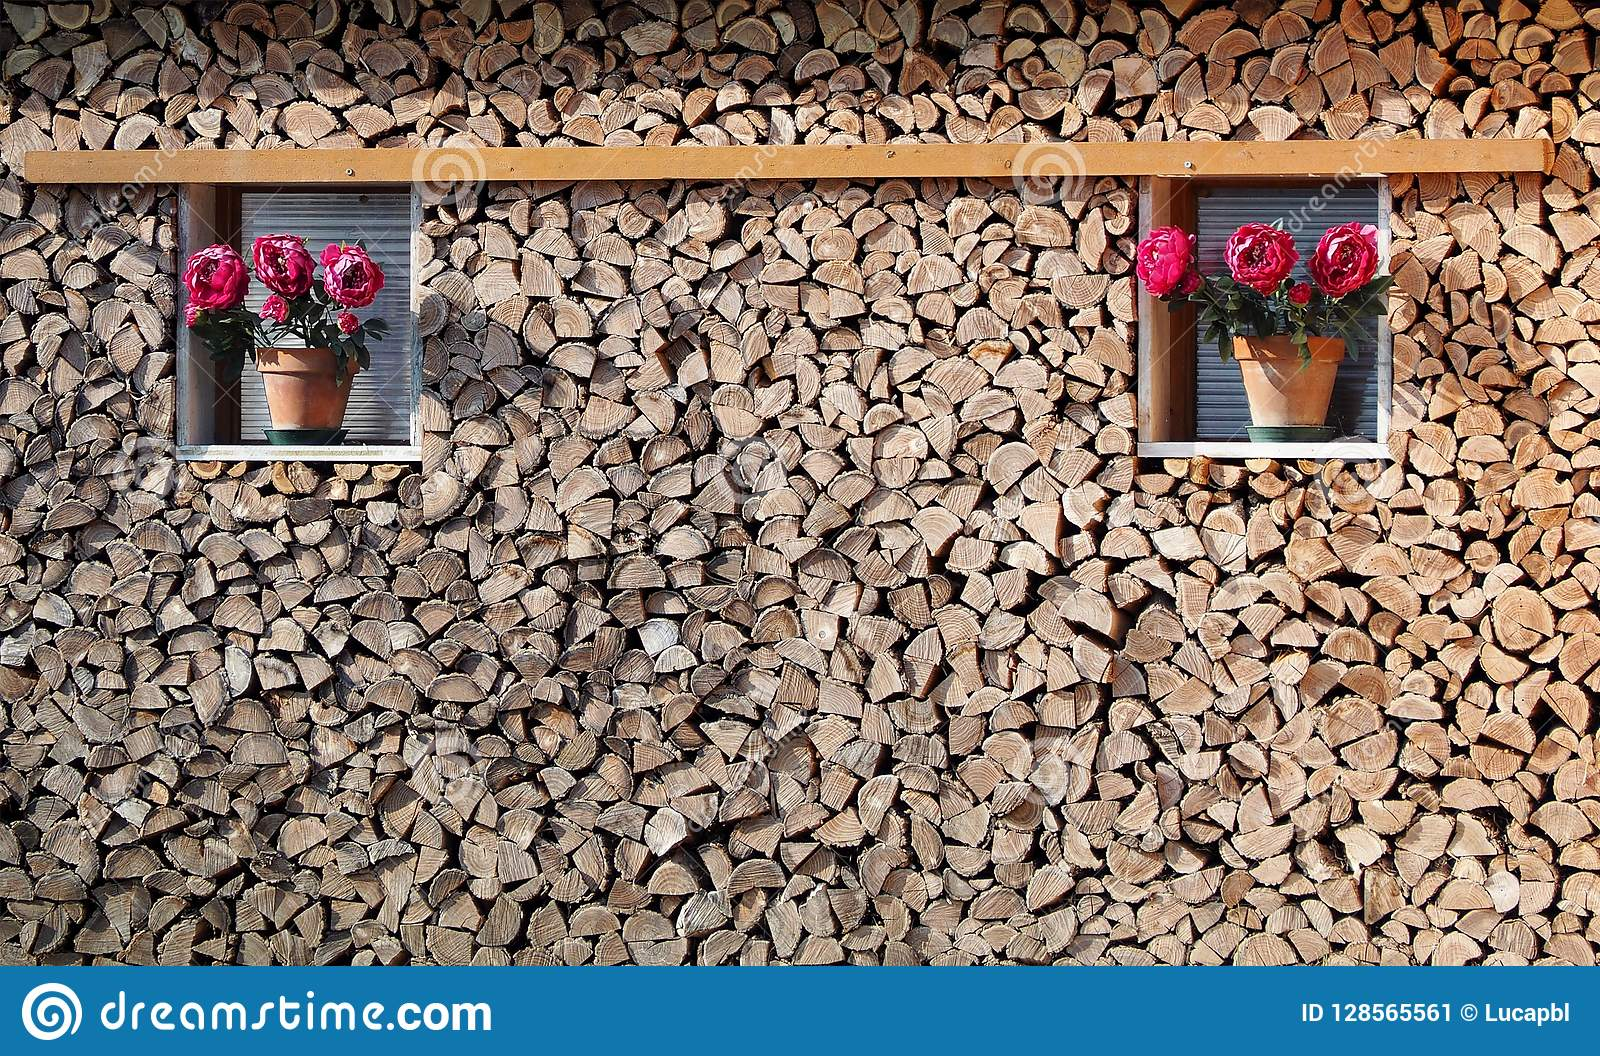 Wood stack texture with two decorative purple flower pots at its edge